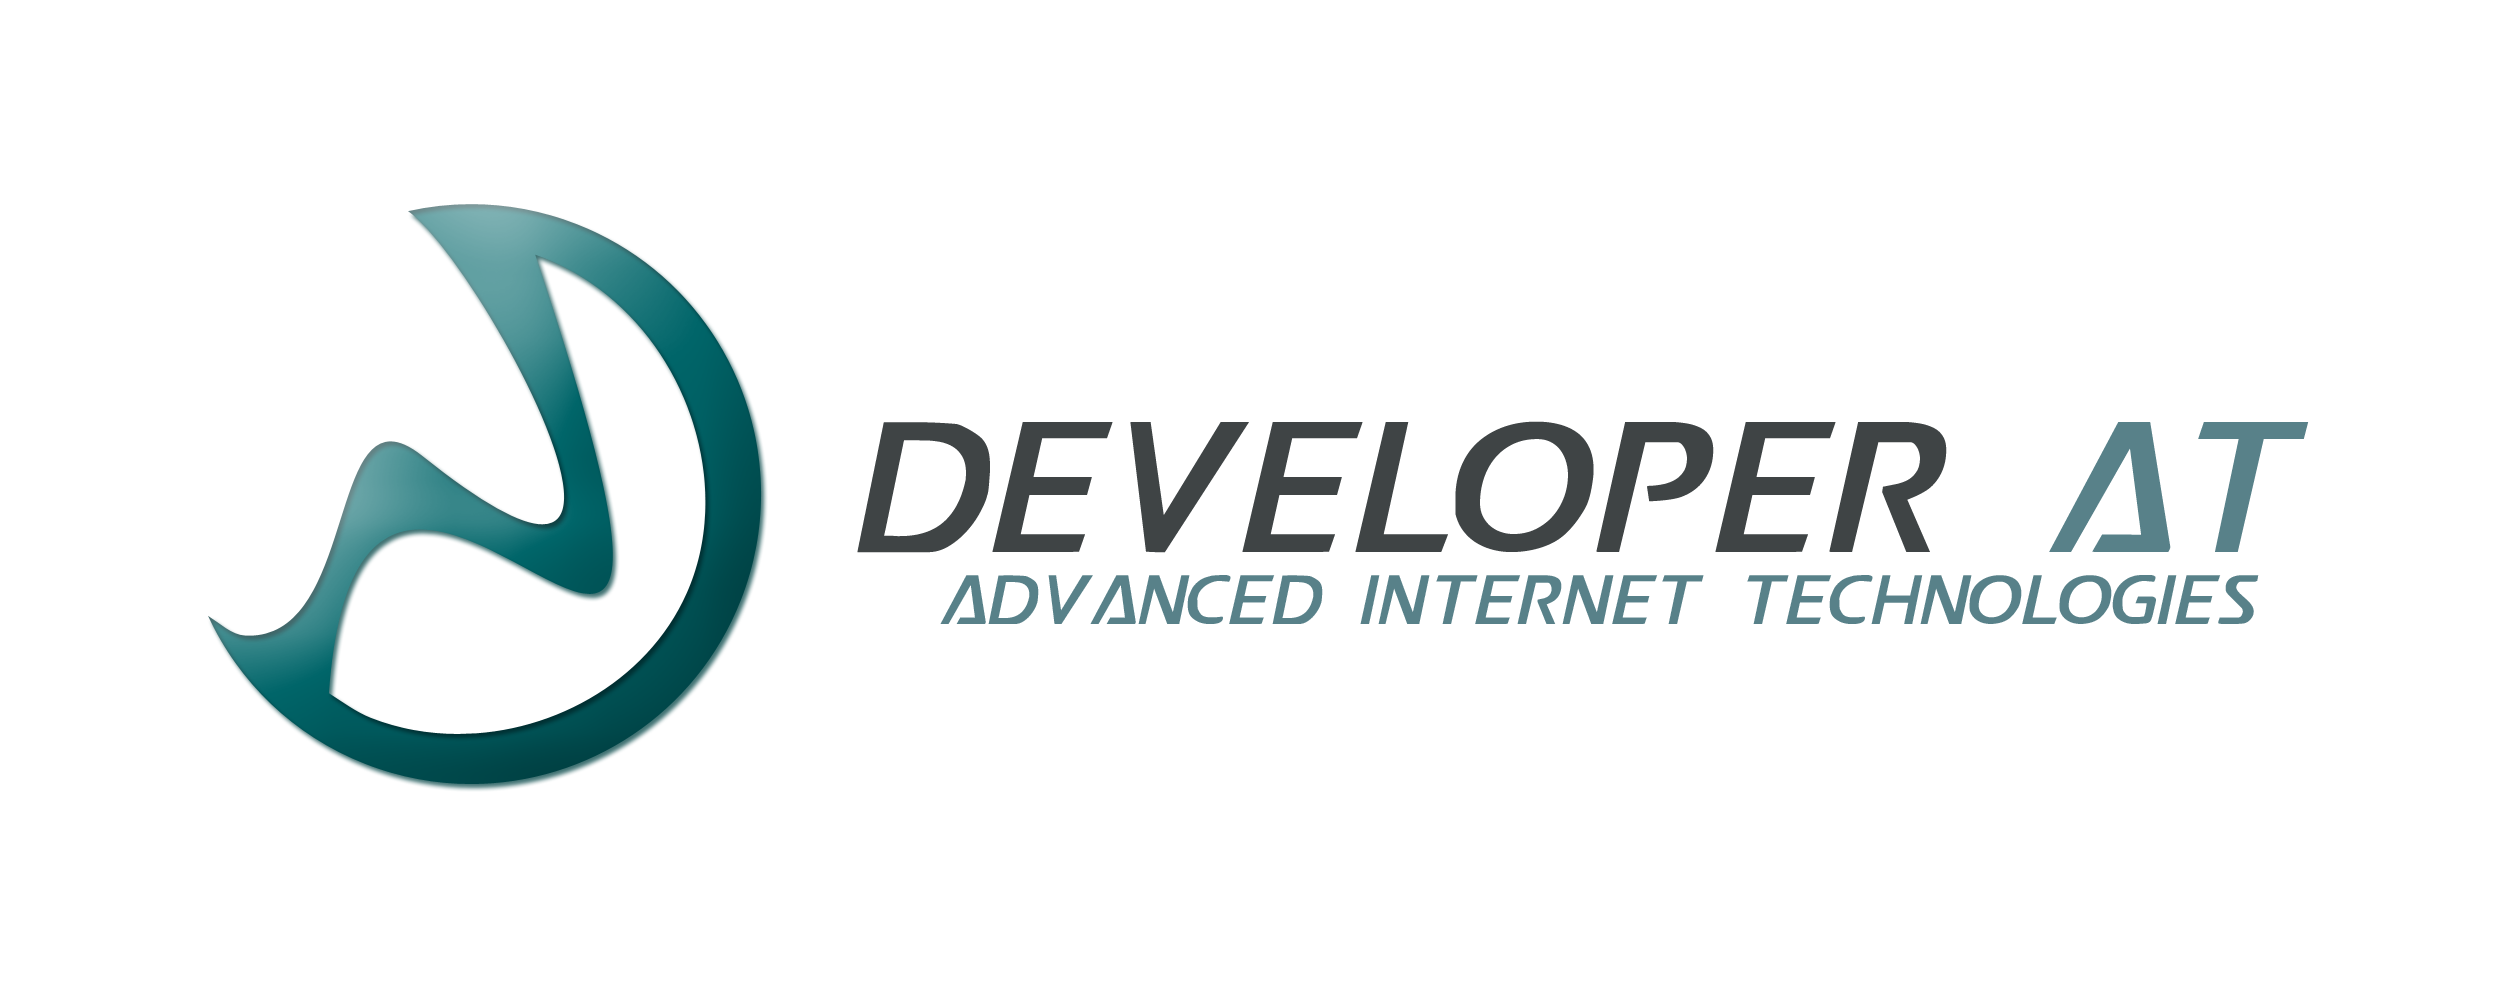 developer-at-logo